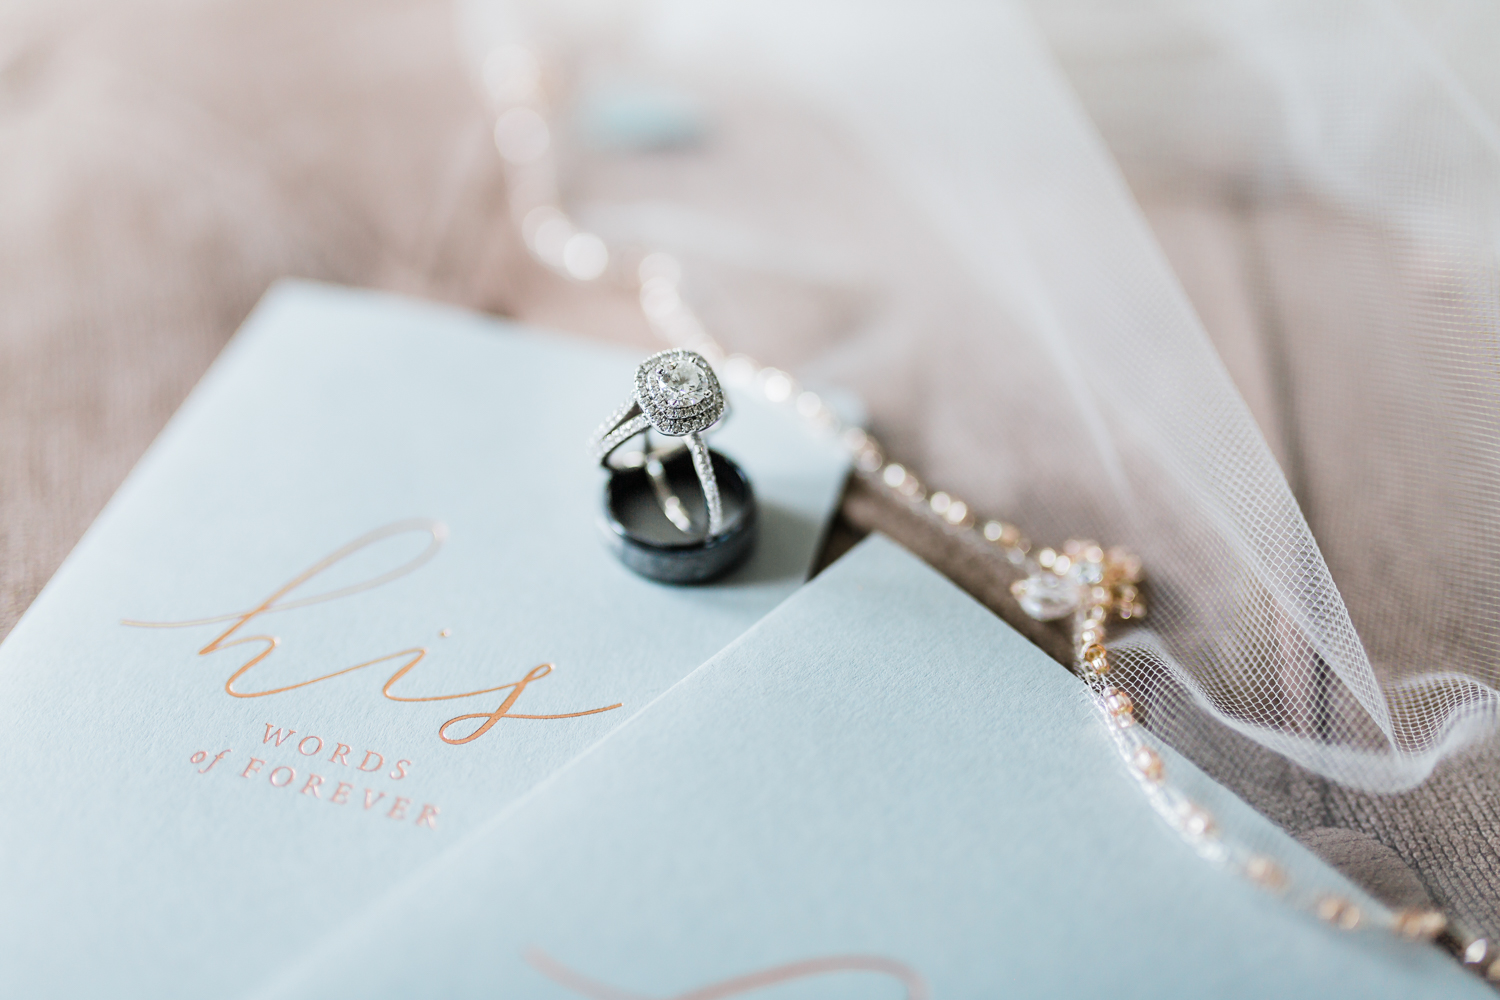 wedding ring details - vow books - etsy vow books - Maryland wedding photographer